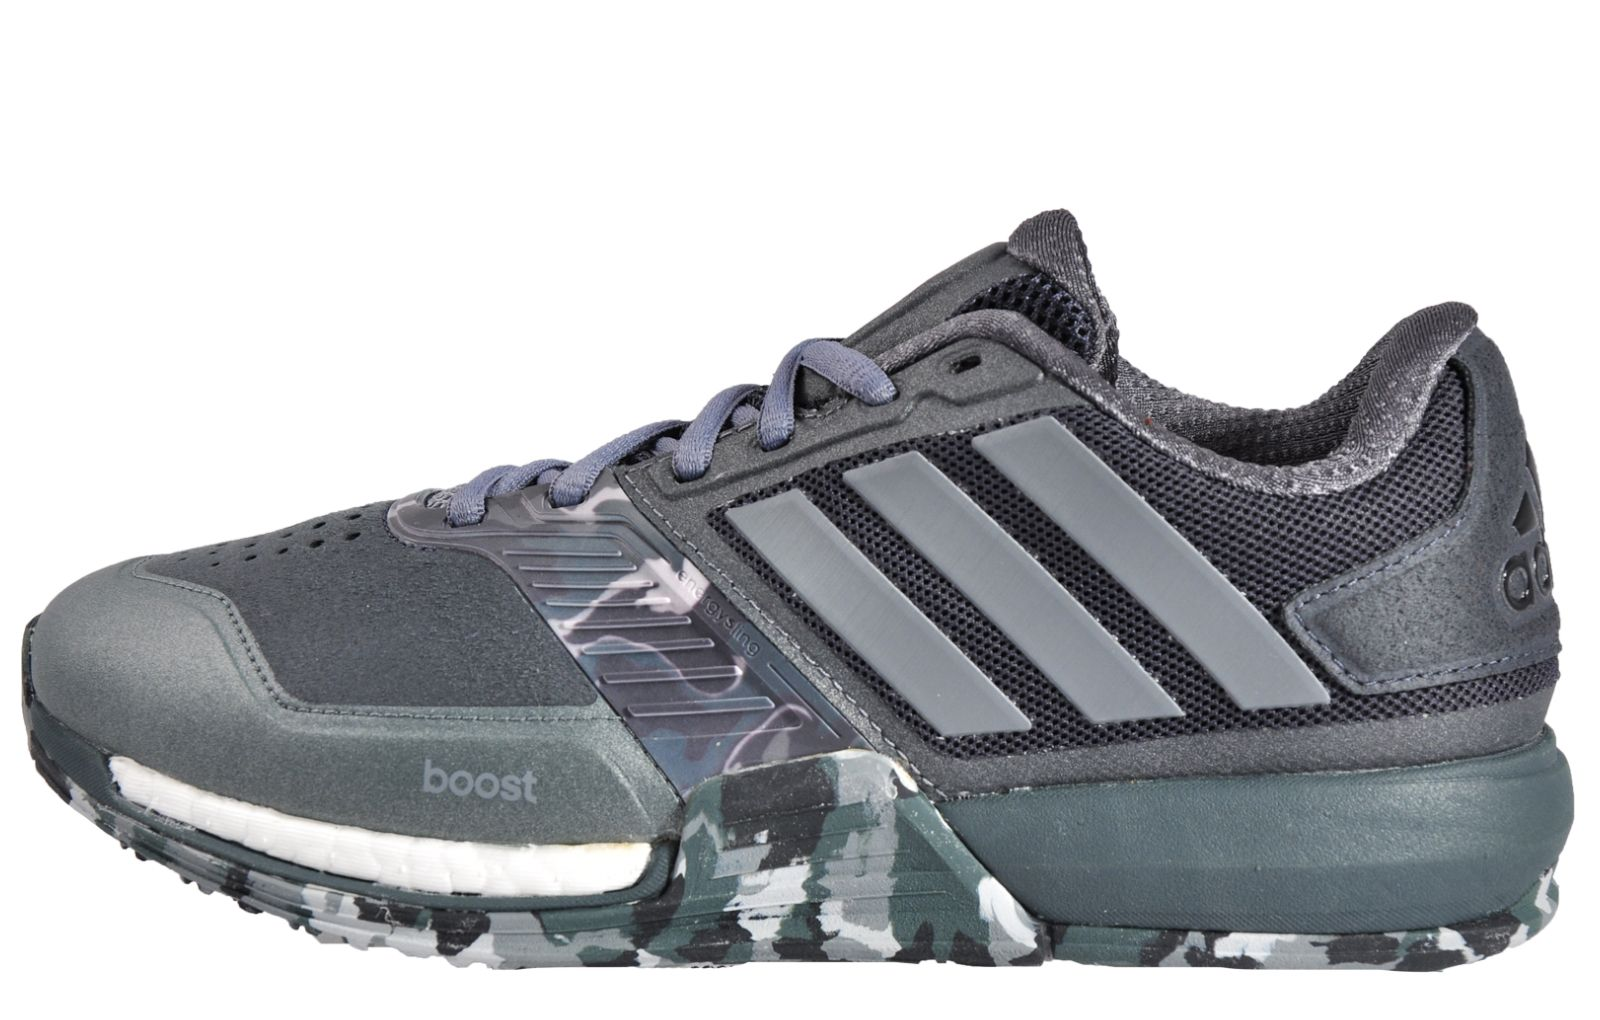 Adidas CrazyTrain Boost Mens